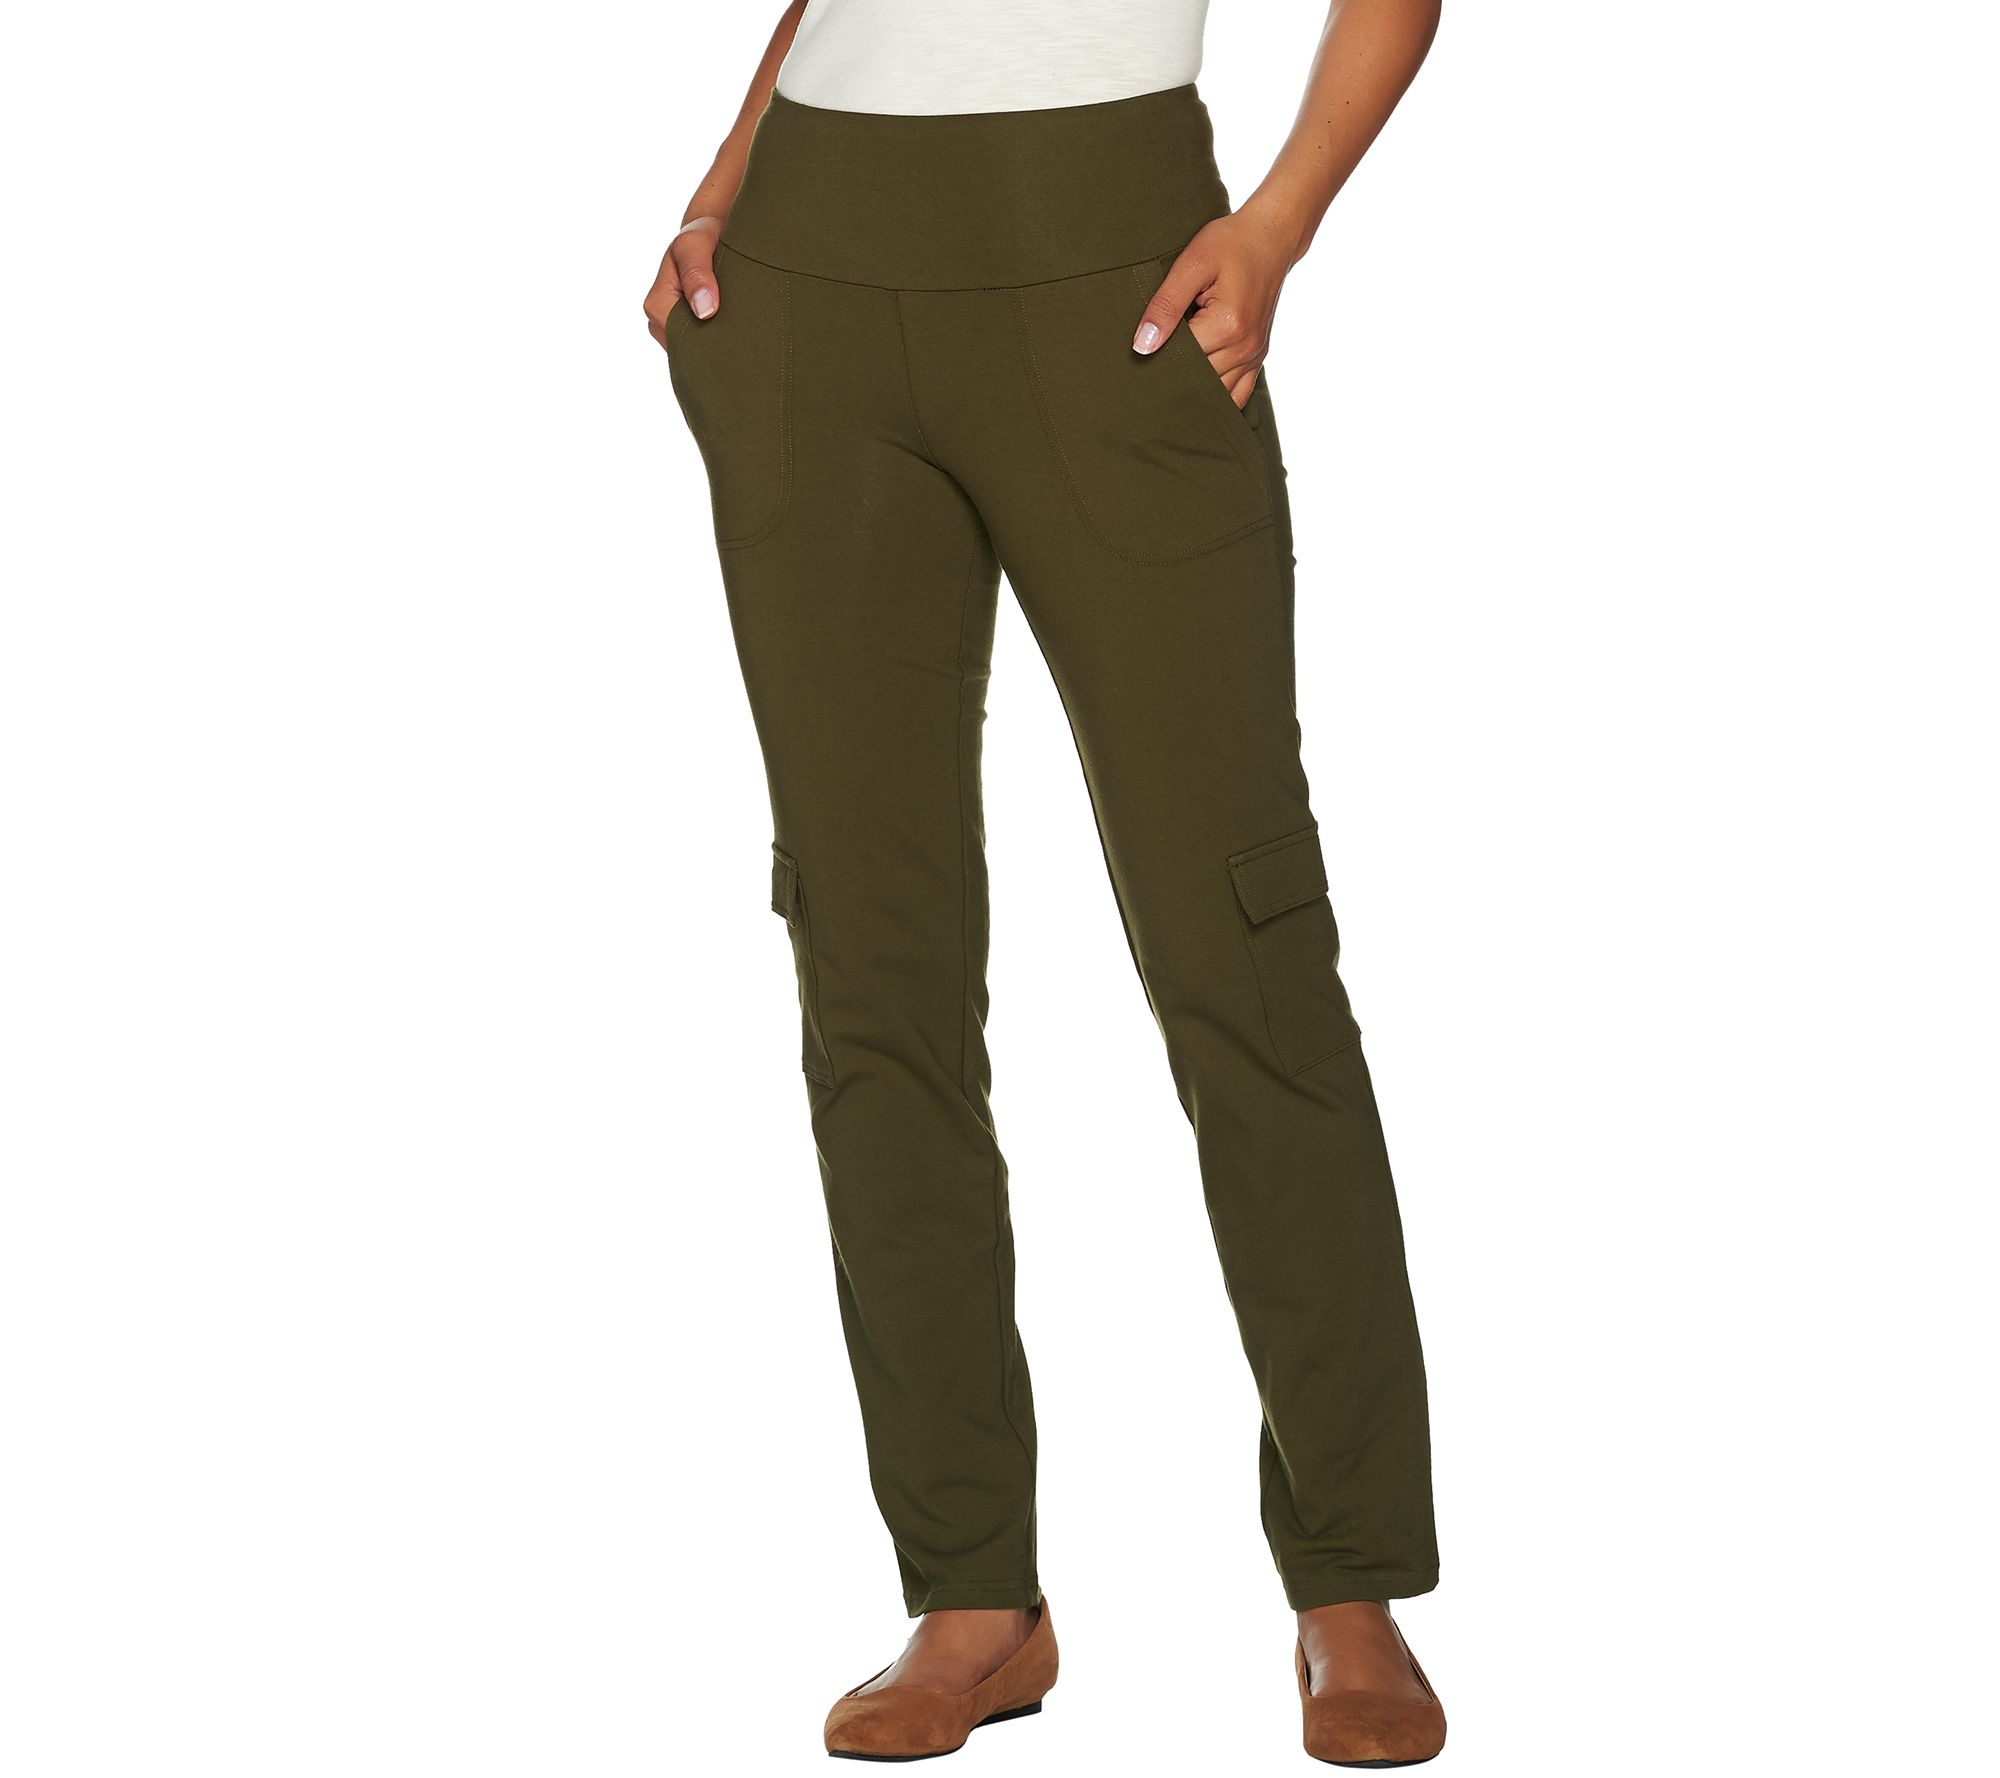 Awesome Match Womens Petite Boyish 8 Pockets Utility Cargo Pants 2036  Movie